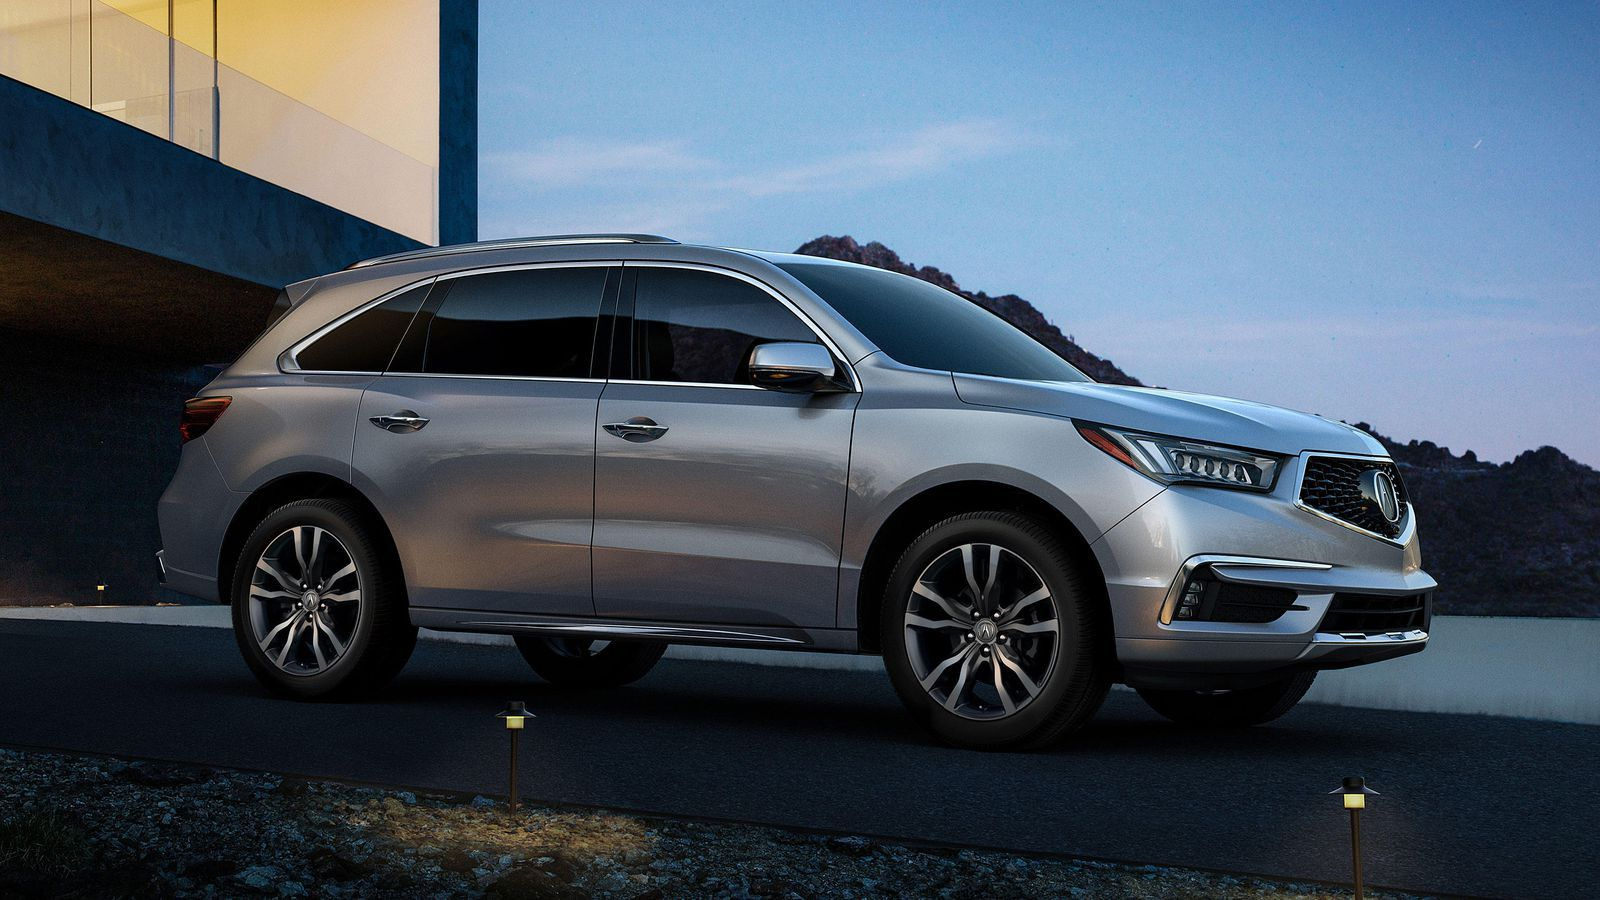 2020 Acura Mdx Lease Deals Price And Release Date Di 2020